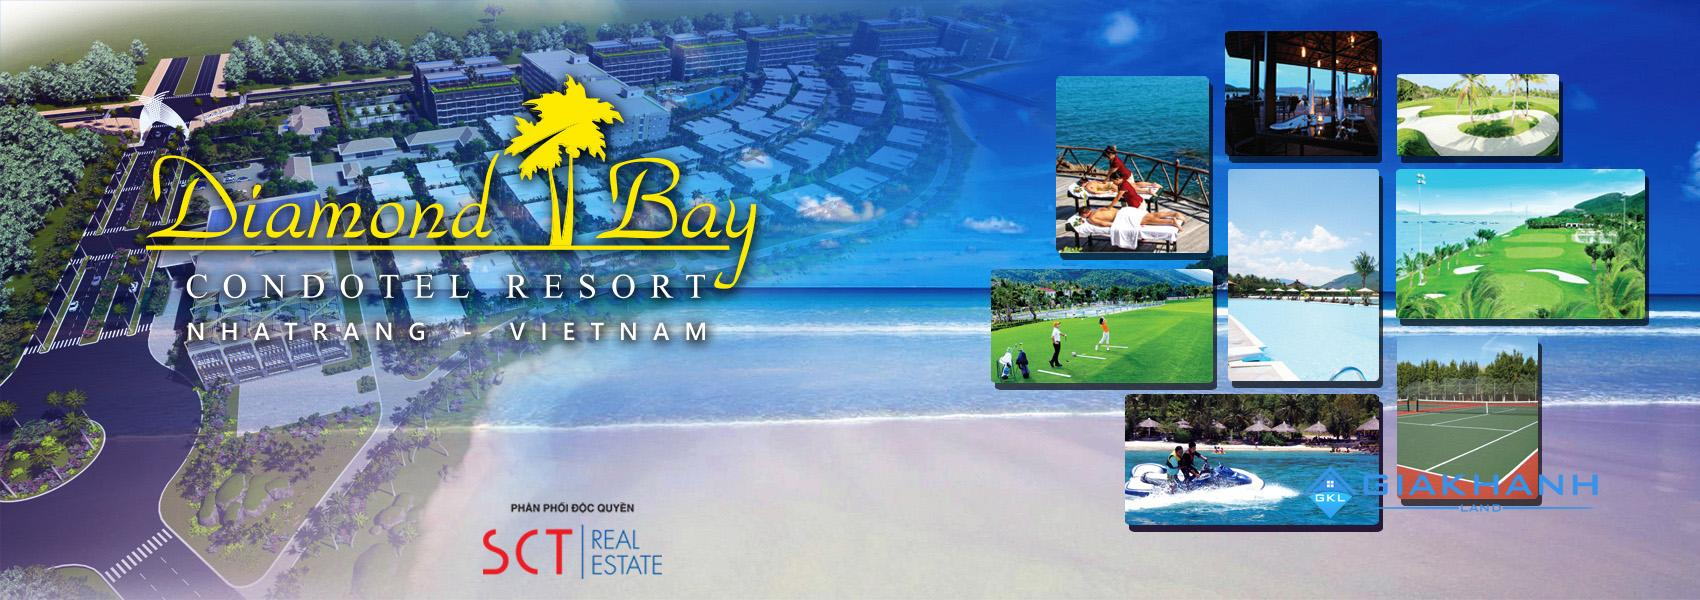 du an condotel Diamond Bay City